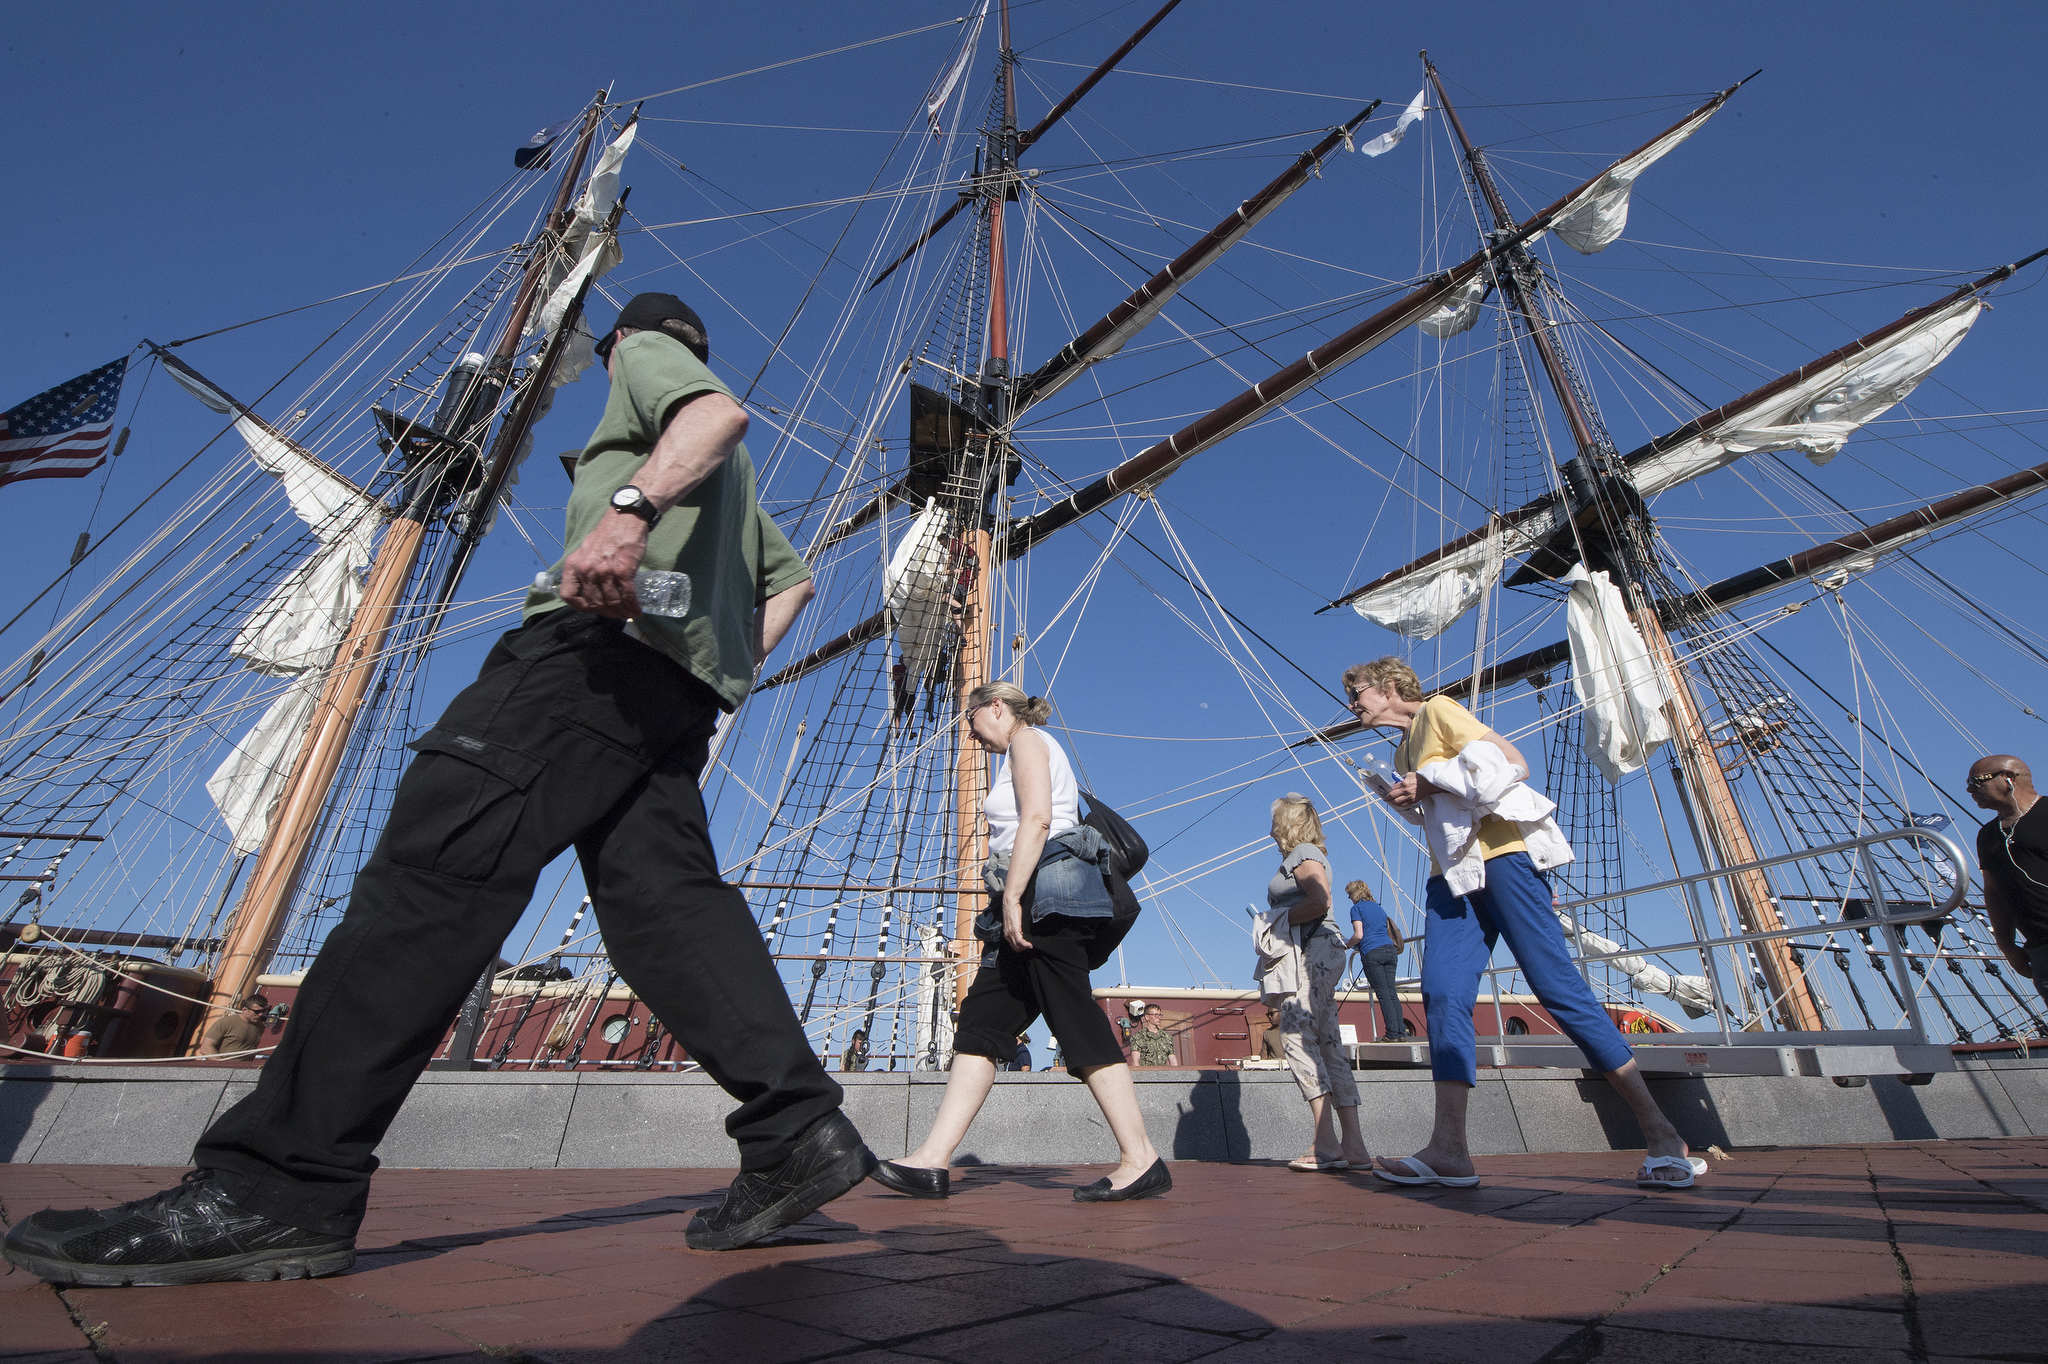 Visitors at Penns Landing, Philadelphia near the Oliver Hazard Perry docked after the Parade of Sails in Philadelphia, Pa., Thursday, May 24, 2018.